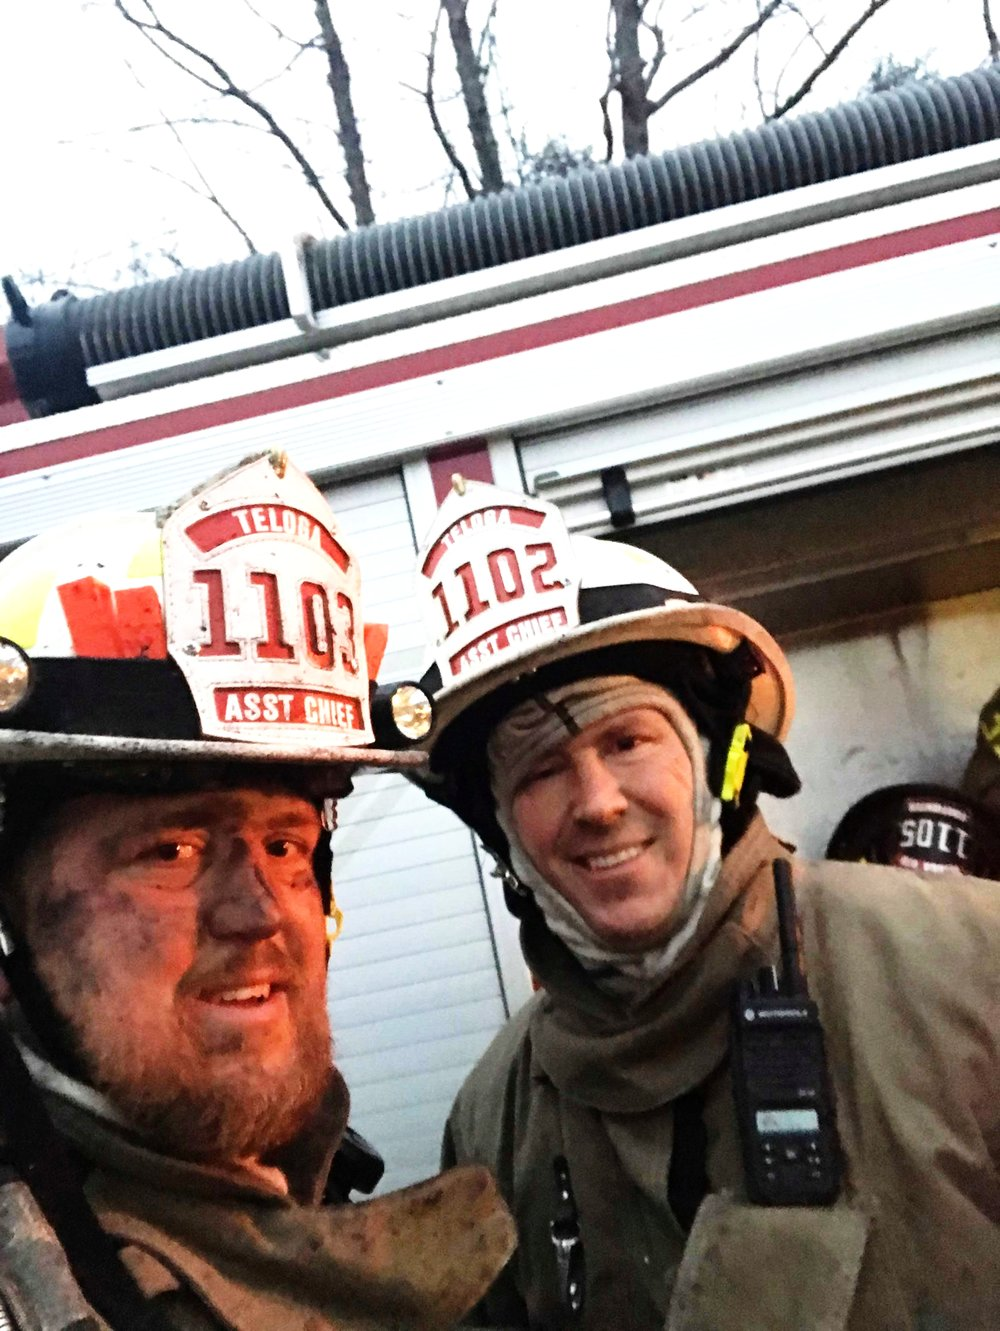 ANDY ROWE  is a 39-year old Assistant Chief of a firefighter department. He is also a private pilot and was previously in the army. He tore his ACL while fighting a house fire when part of the roof collapsed on his knee and is 13 weeks post-op.